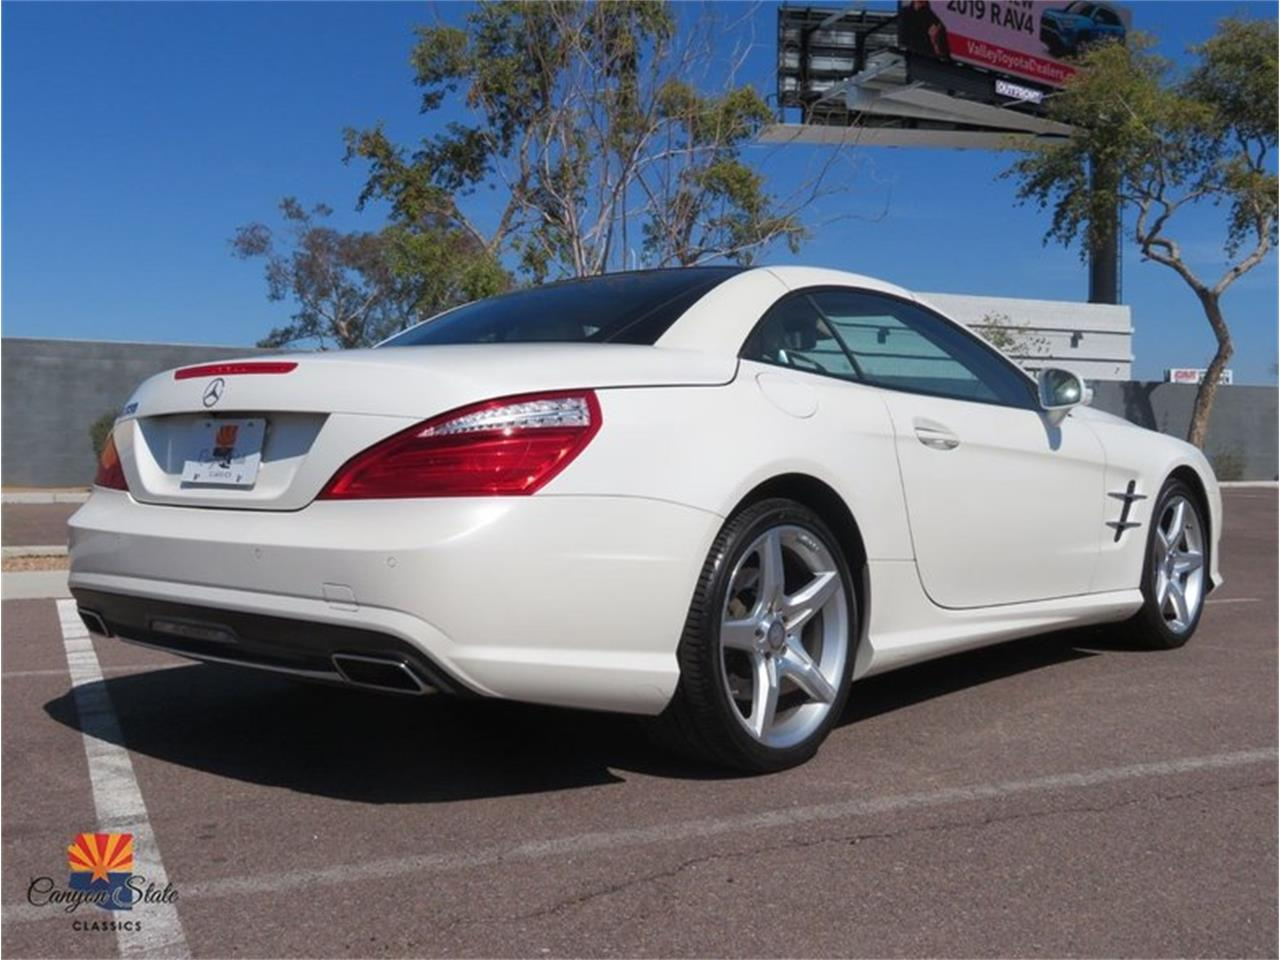 2013 Mercedes-Benz SL-Class for sale in Tempe, AZ – photo 72